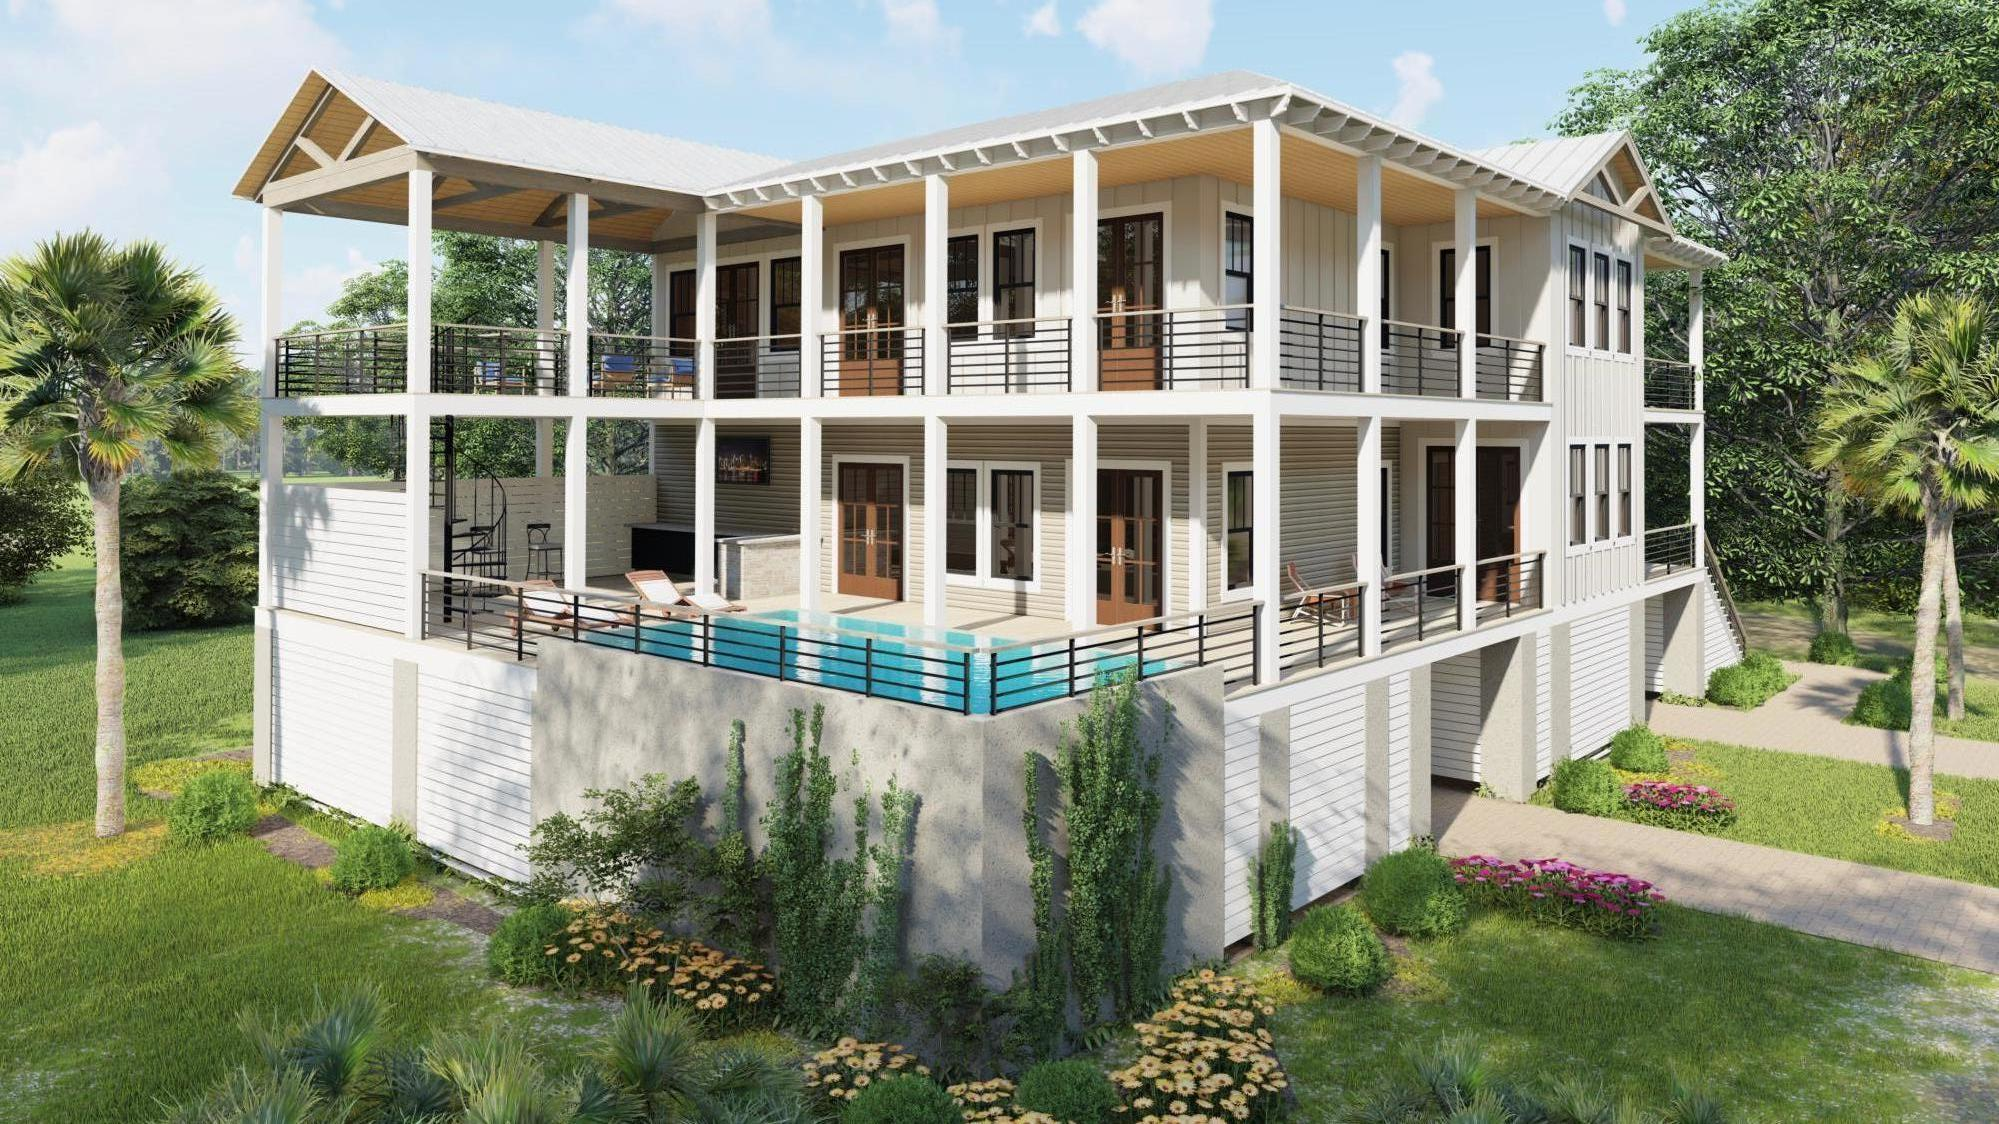 4 Edgewater Alley Isle Of Palms, SC 29451